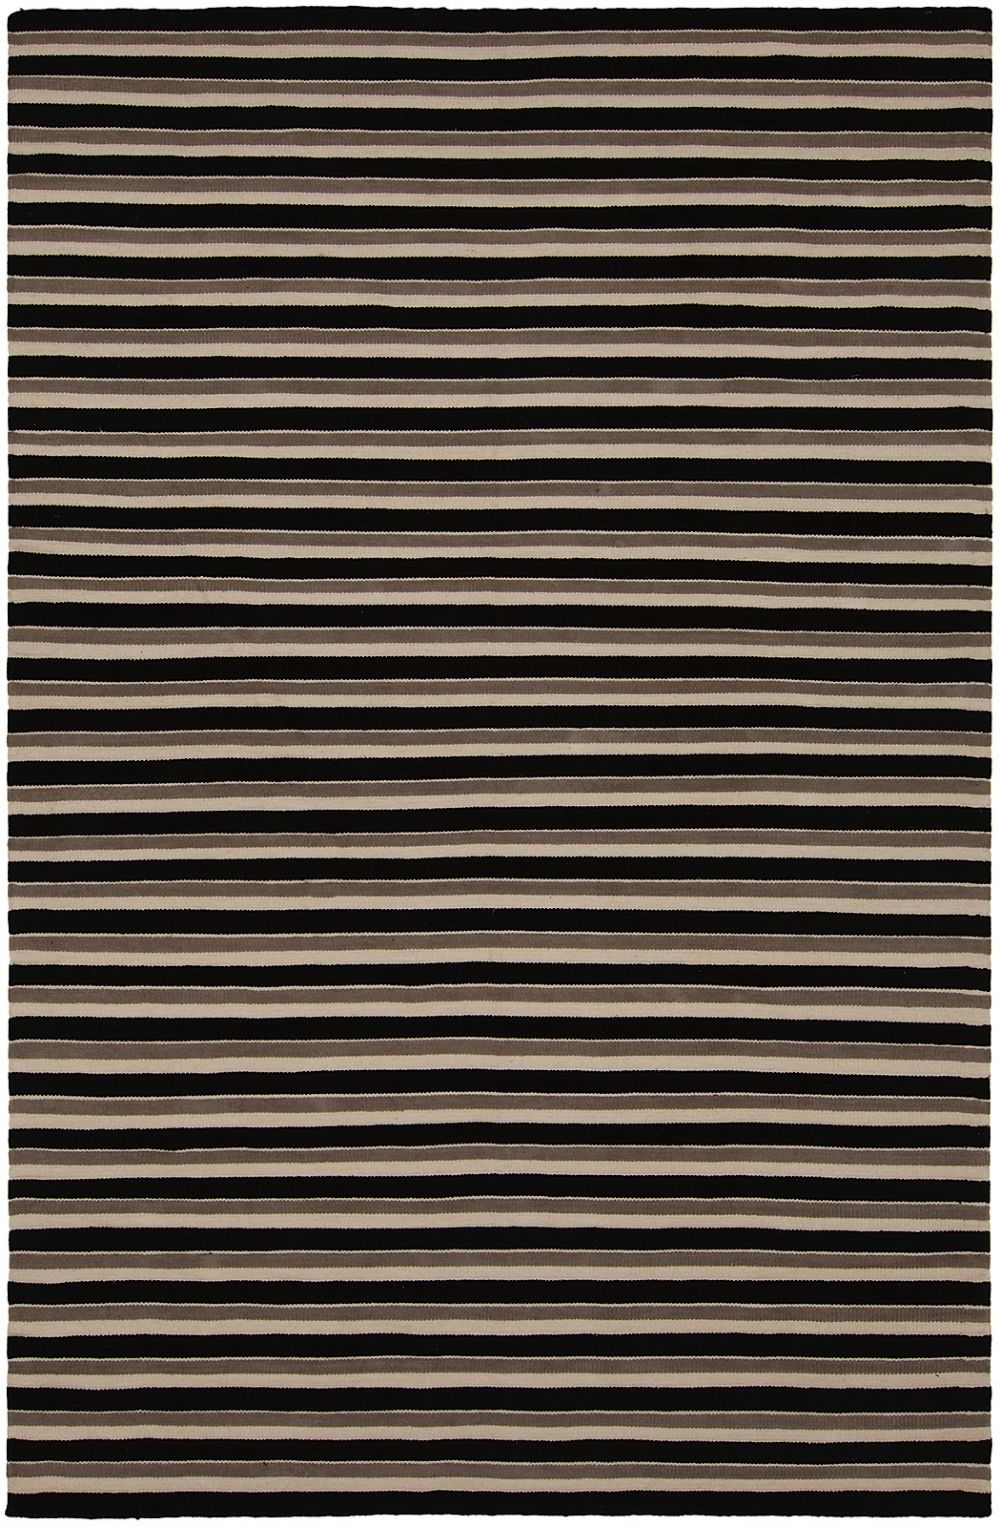 chandra semoy solid/striped area rug collection